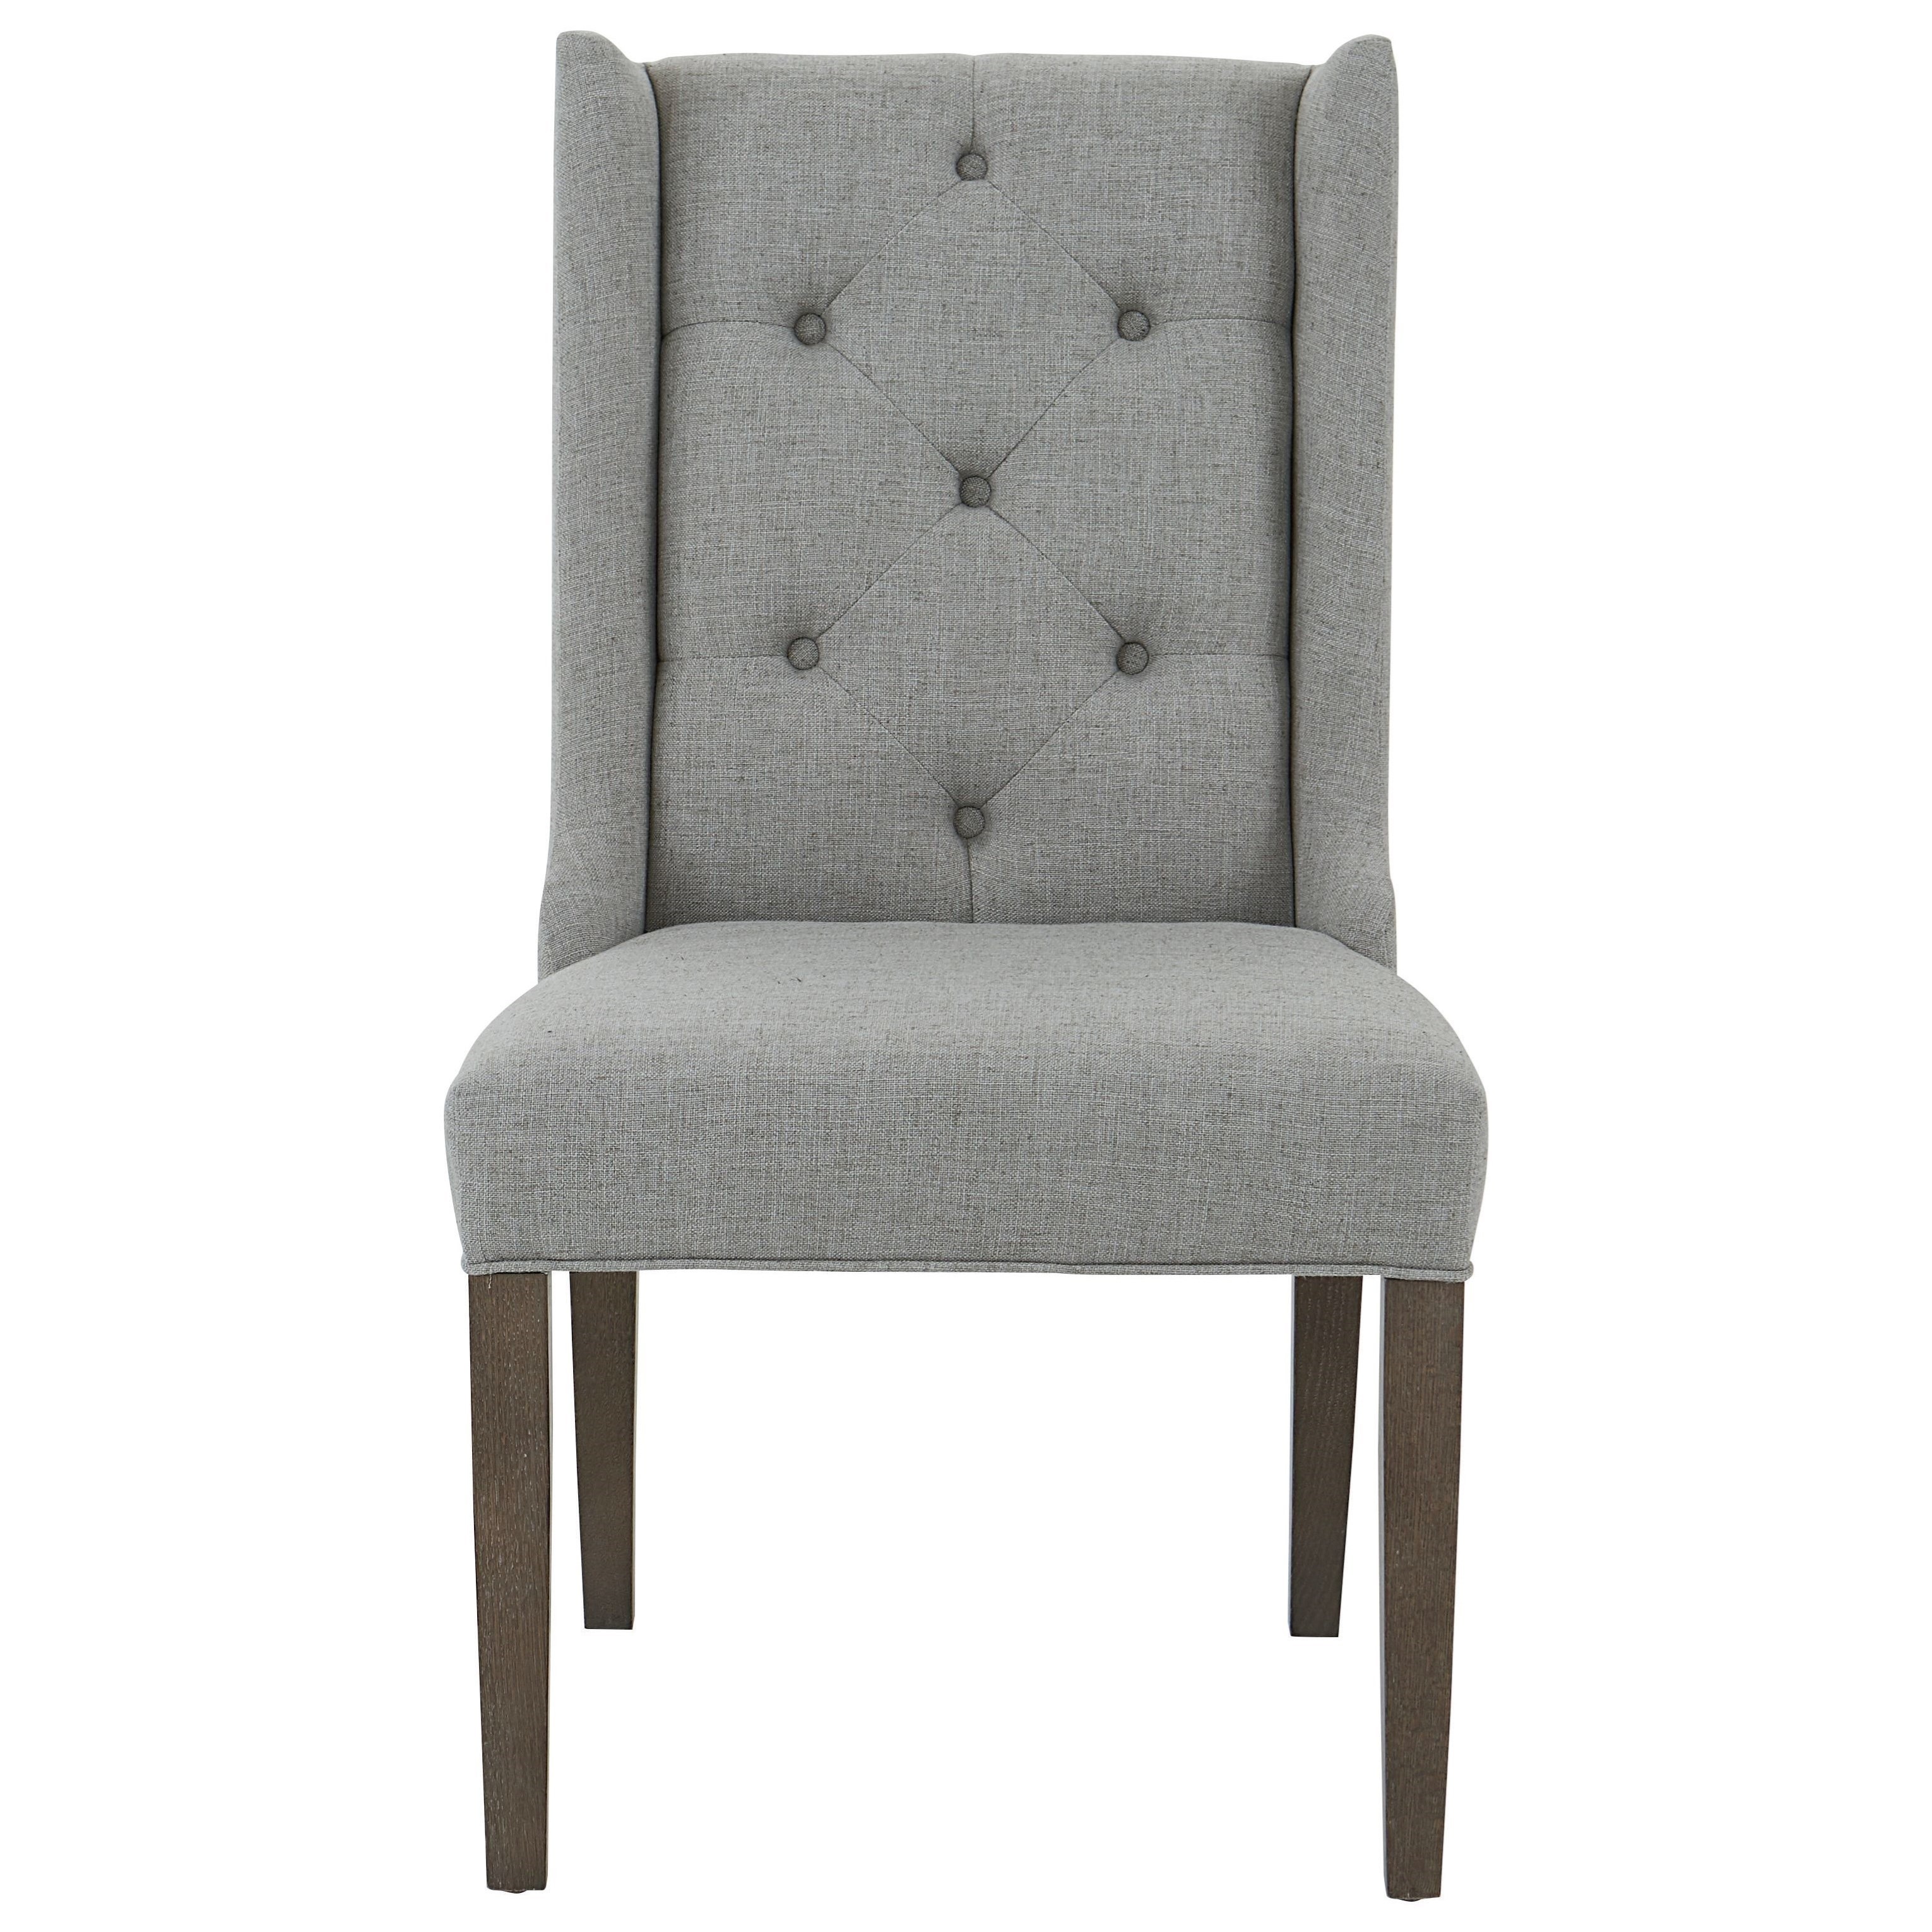 Brooke Wing Back Side Chair with Tufted Back by Bassett at Williams & Kay